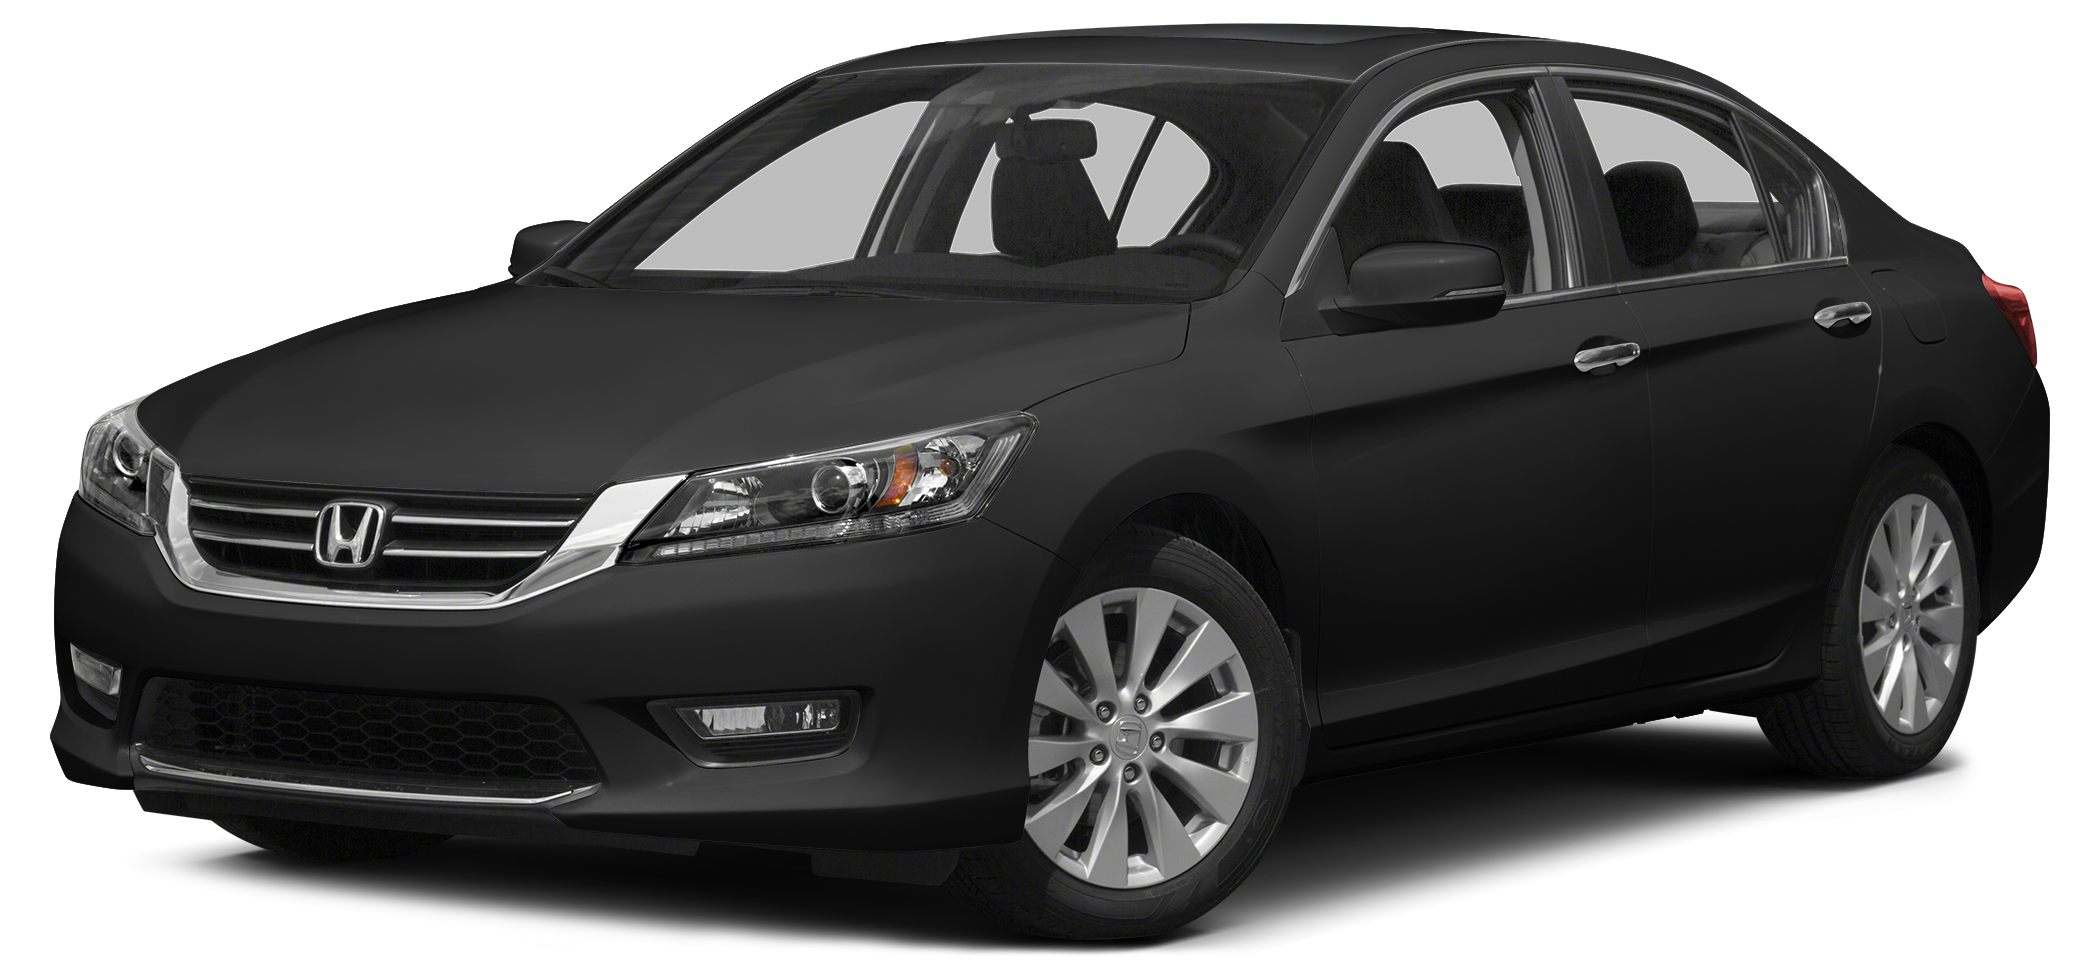 2014 Honda Accord EX-L V6 w Navigation Stop Clicking Now Call Kraig at 866-372-1761 I wont was